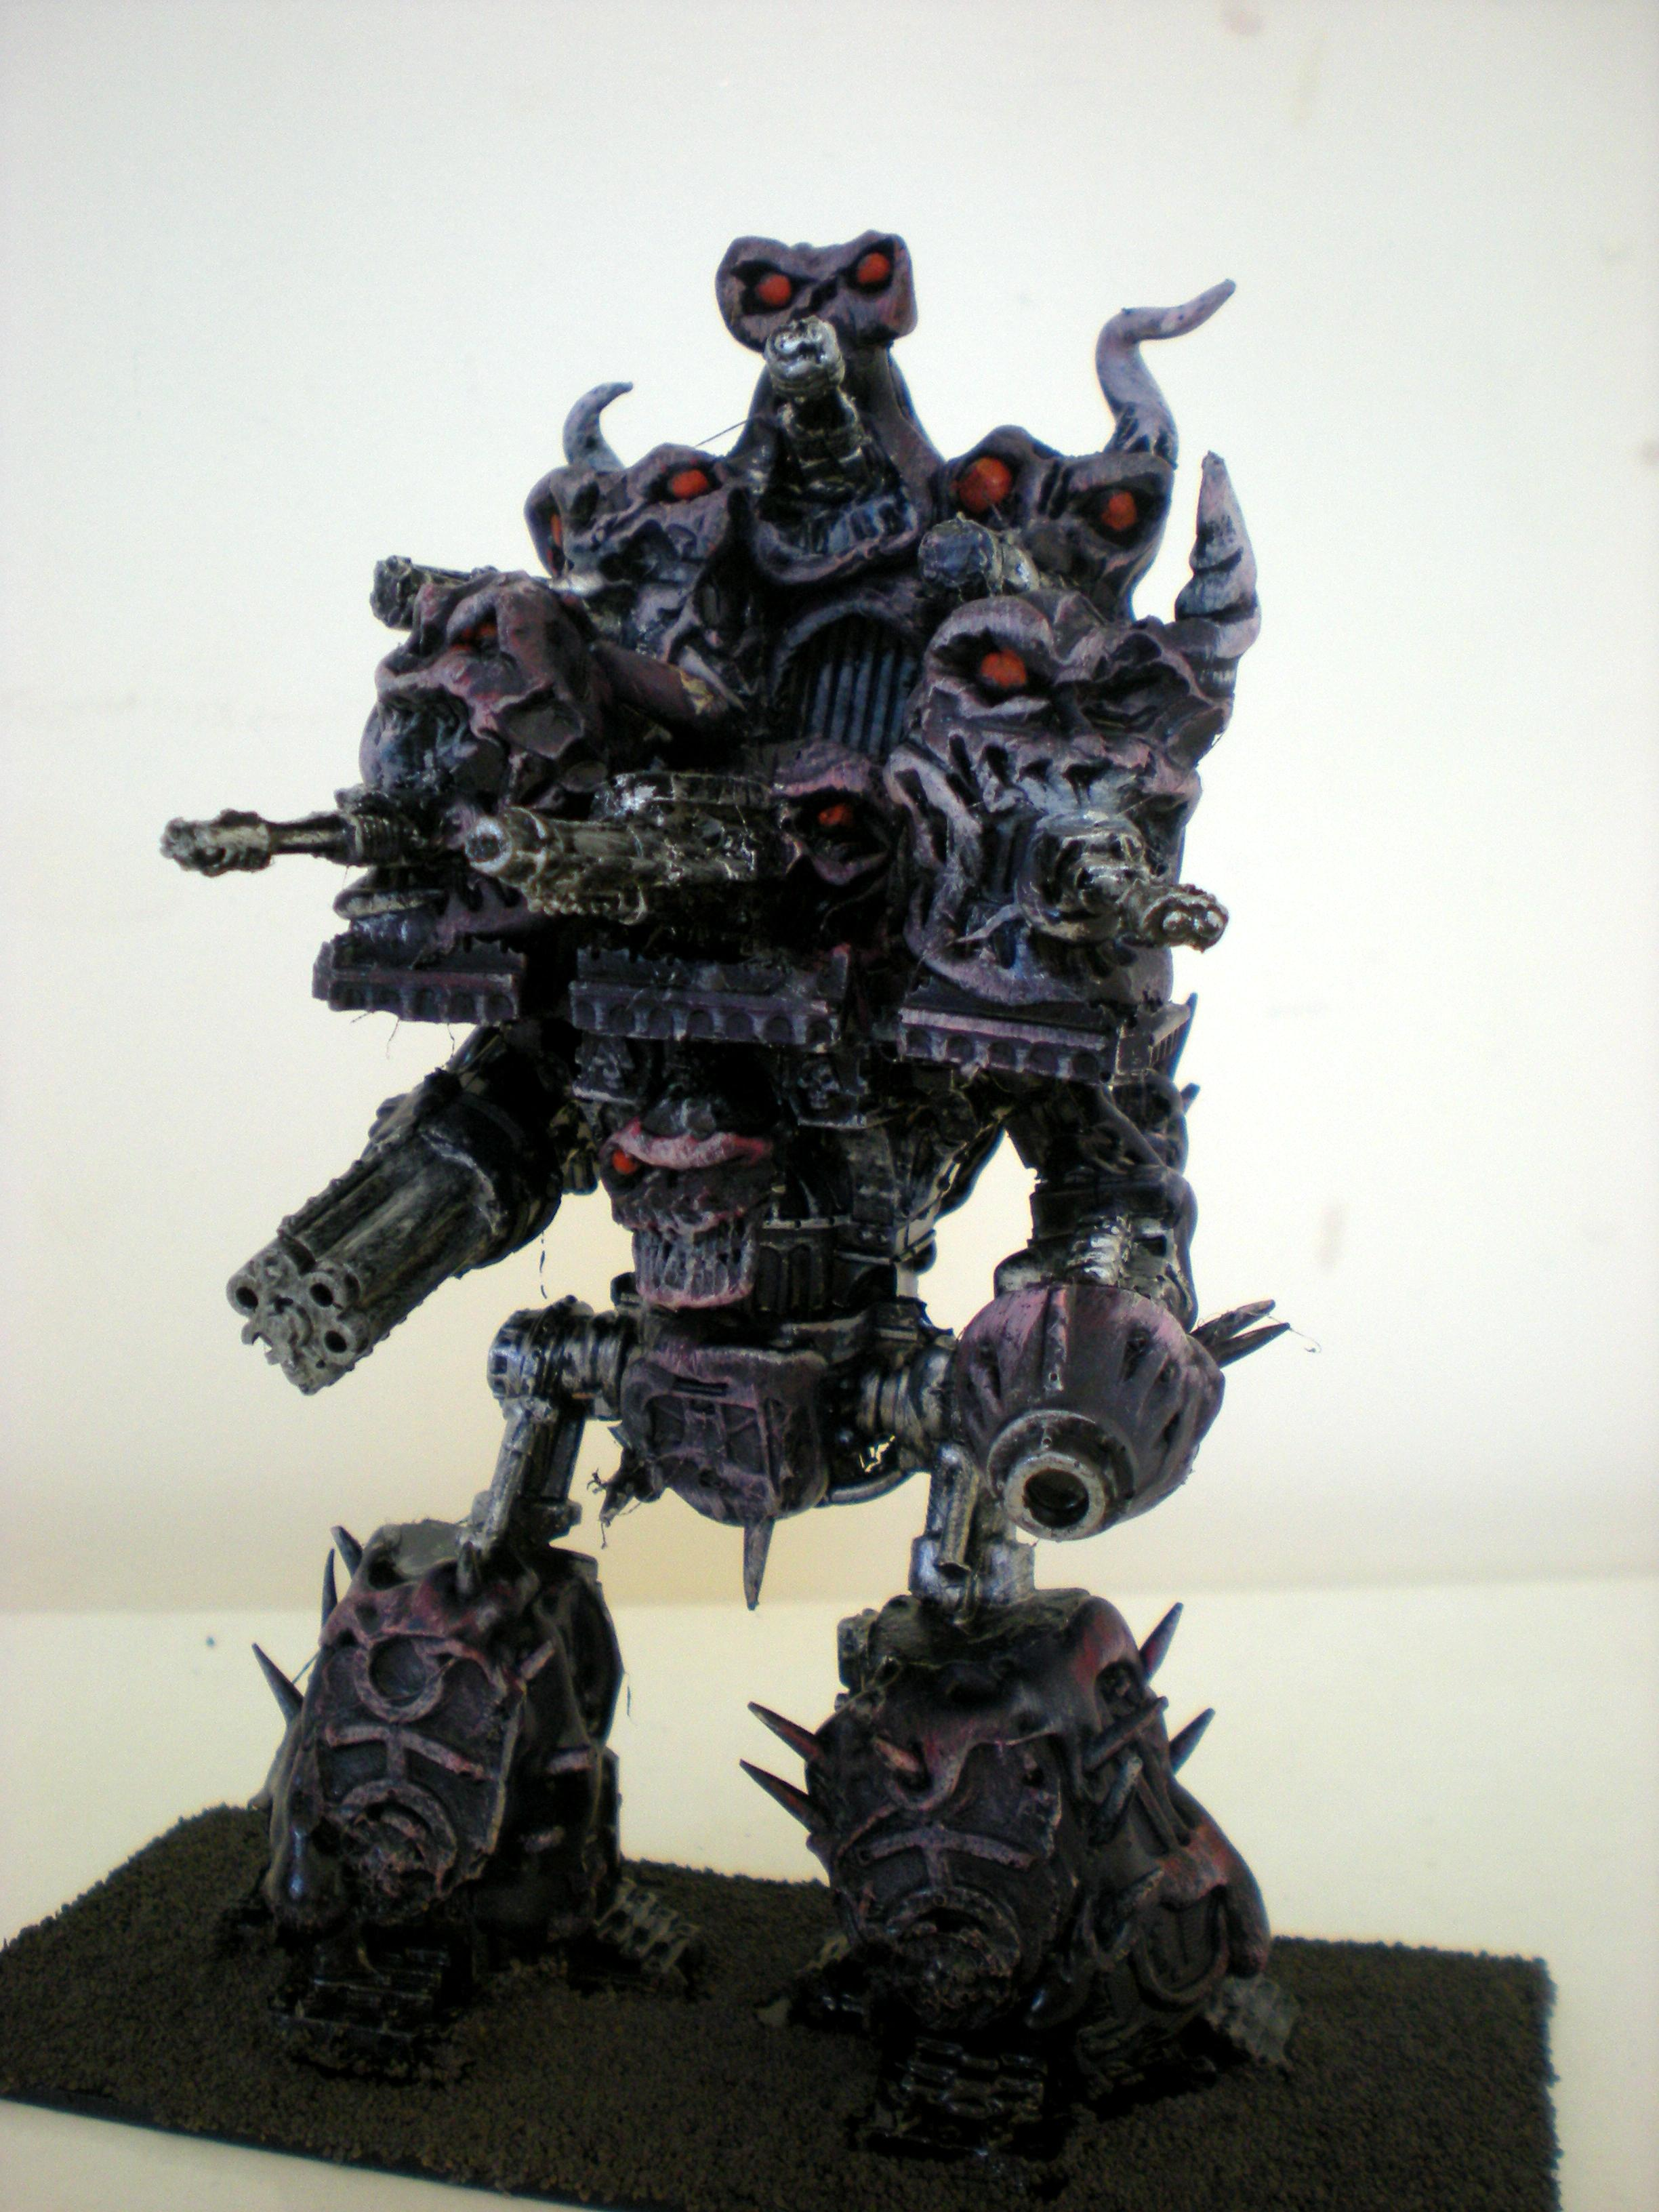 88680-Chaos%20Space%20Marine%20Imperator